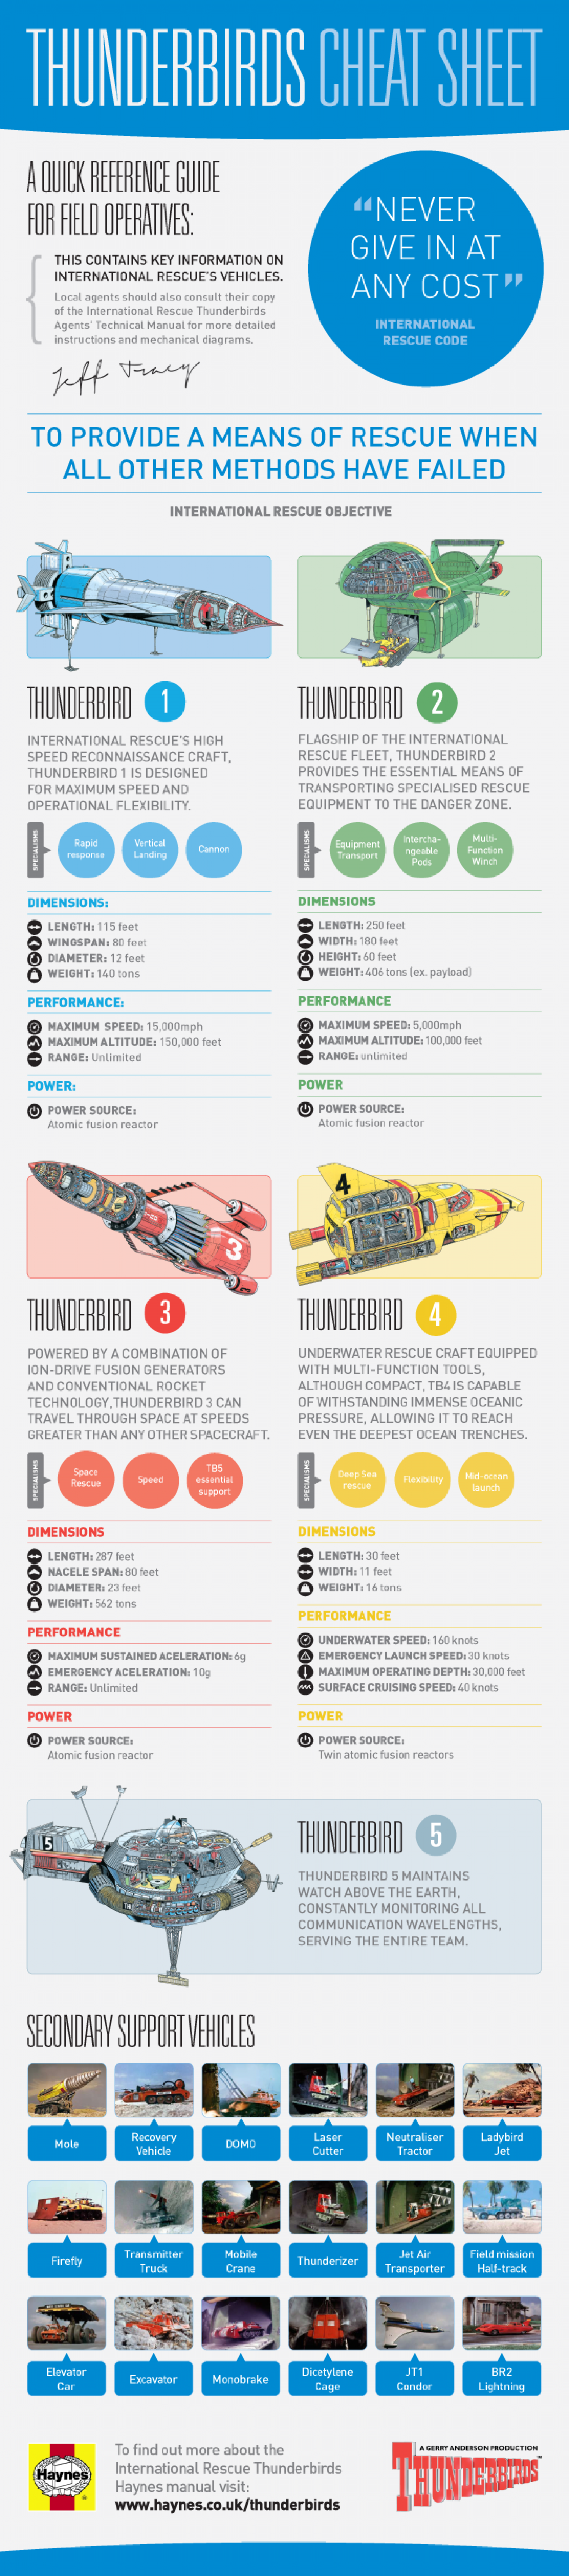 Thunderbirds Cheat Sheet from Haynes Infographic